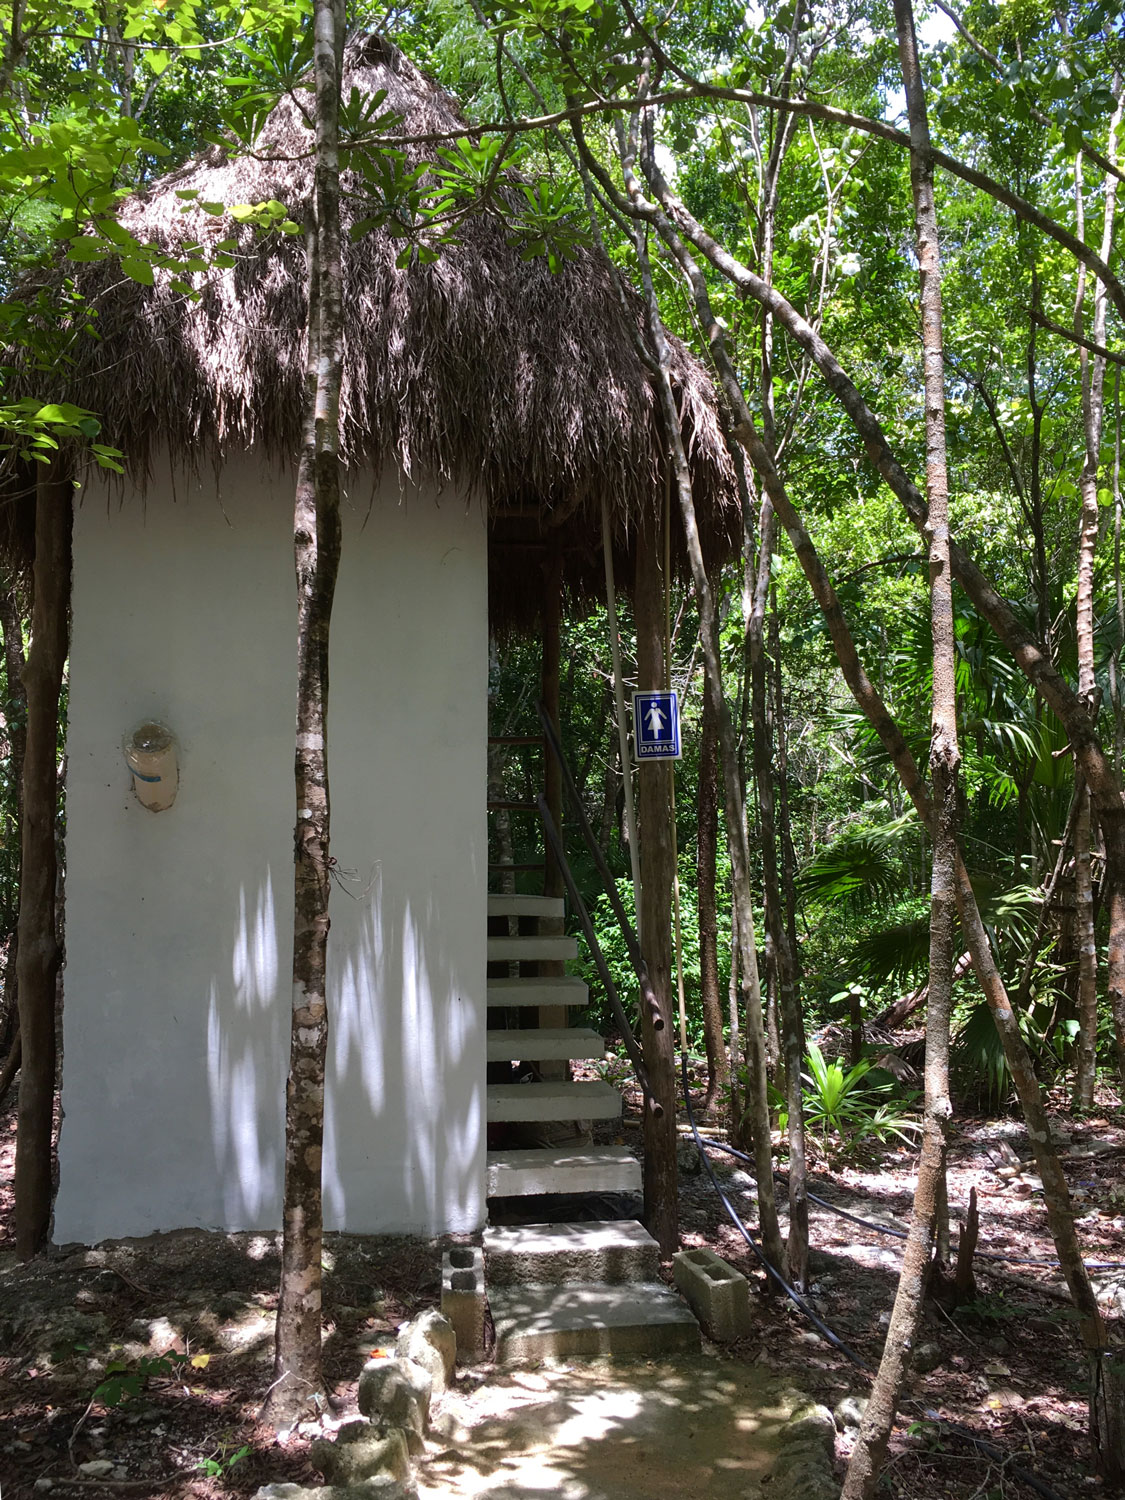 Rustic bathrooms in the jungle.